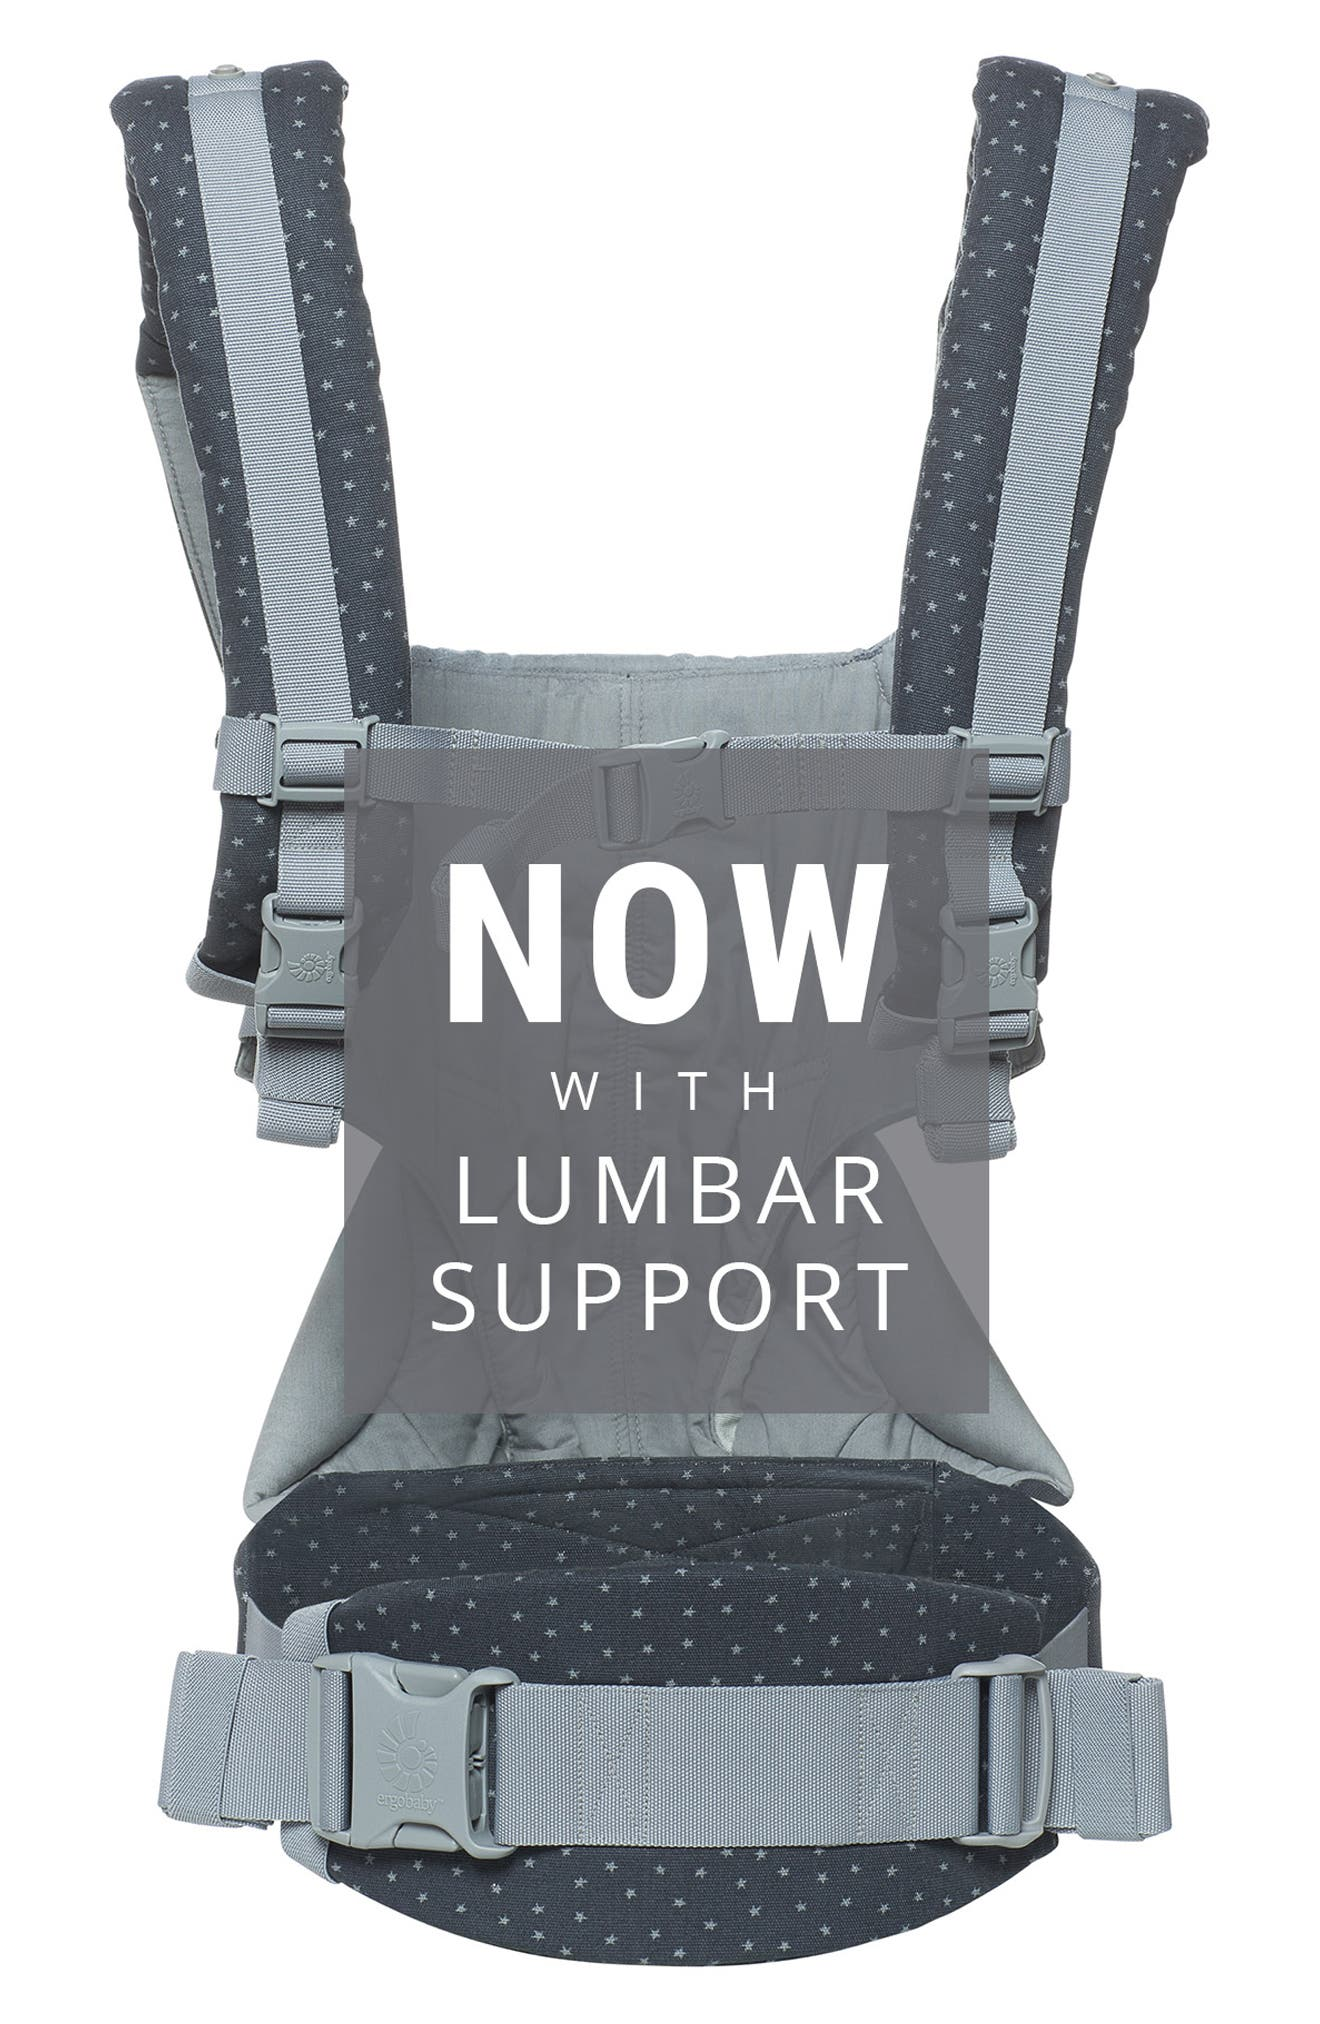 '360' Baby Carrier,                             Alternate thumbnail 4, color,                             GREY WITH STARS